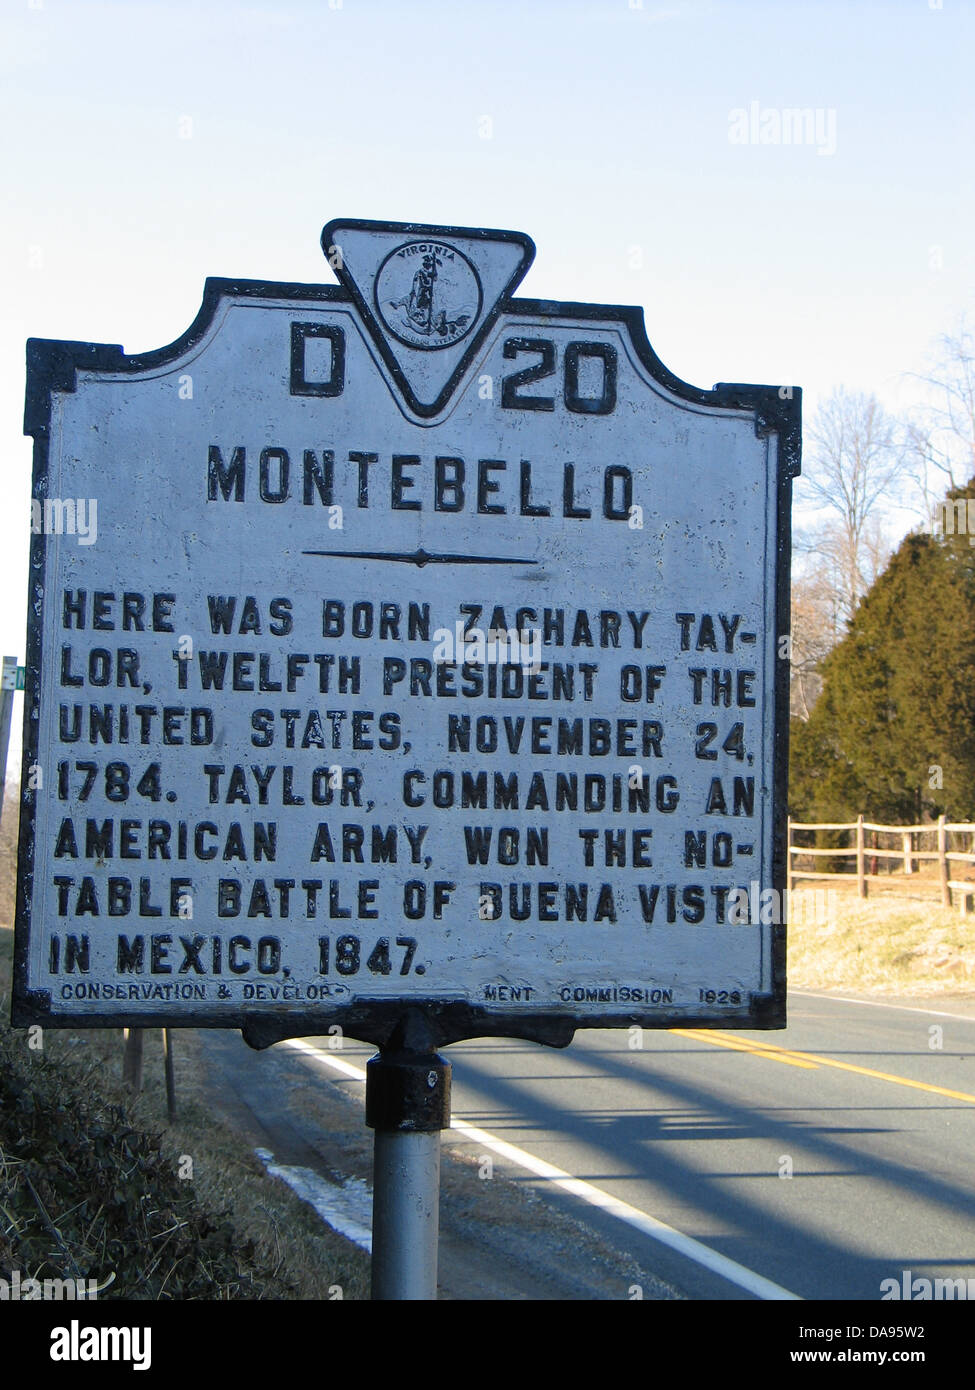 MONTEBELLO Here was born Zachary Taylor, twelfth president of the United States, November 24, 1784. Taylor, commanding Stock Photo